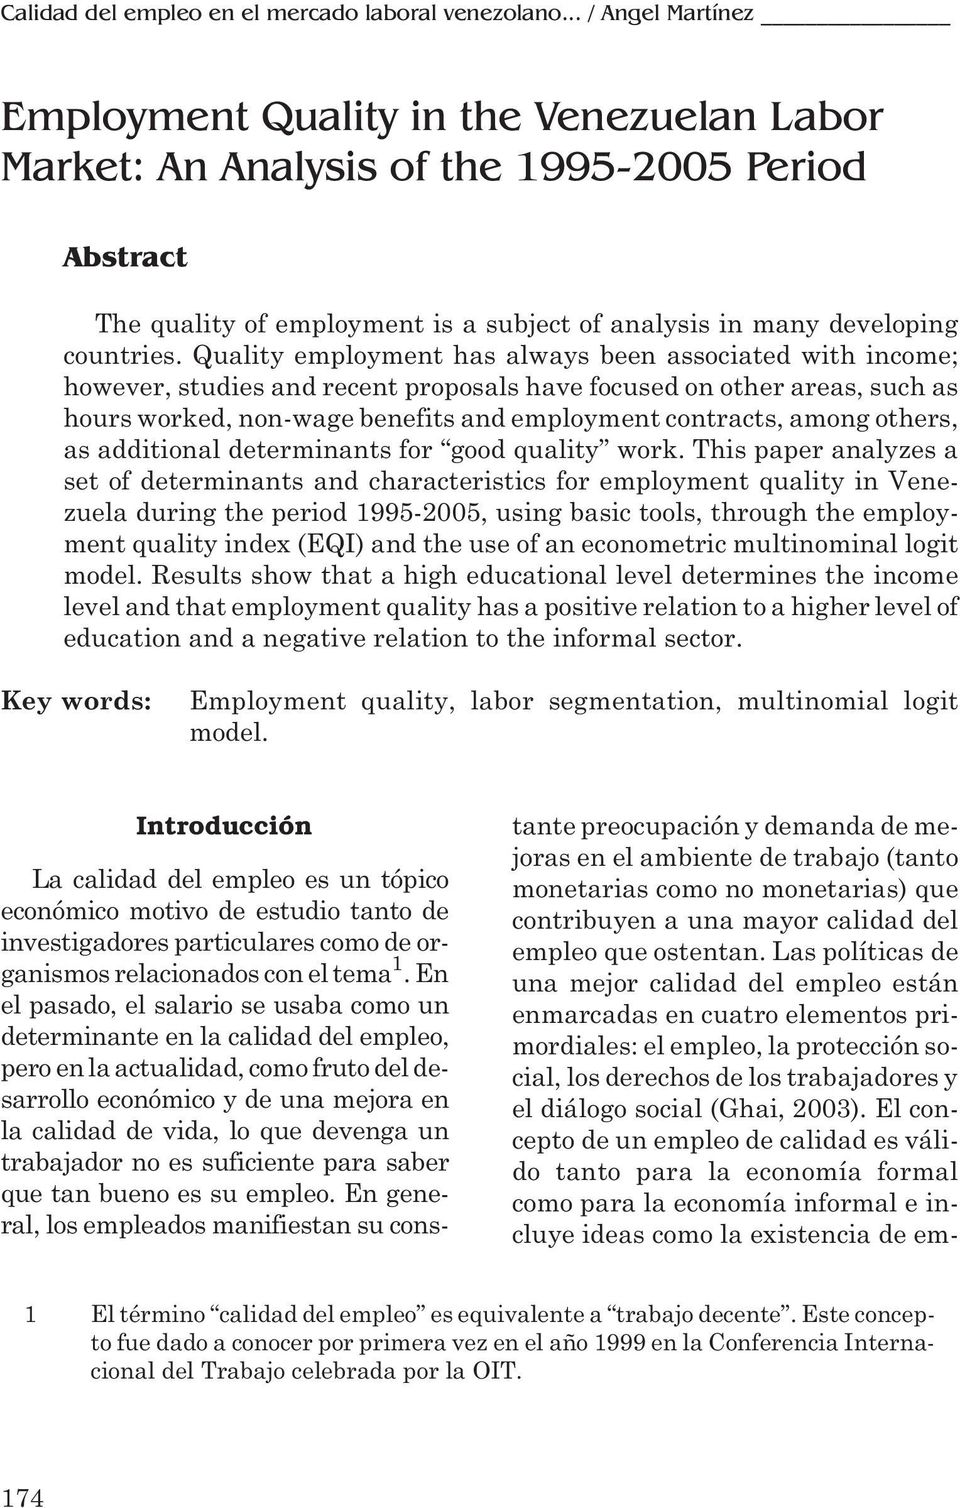 Quality employment has always been associated with income; however, studies and recent proposals have focused on other areas, such as hours worked, non-wage benefits and employment contracts, among